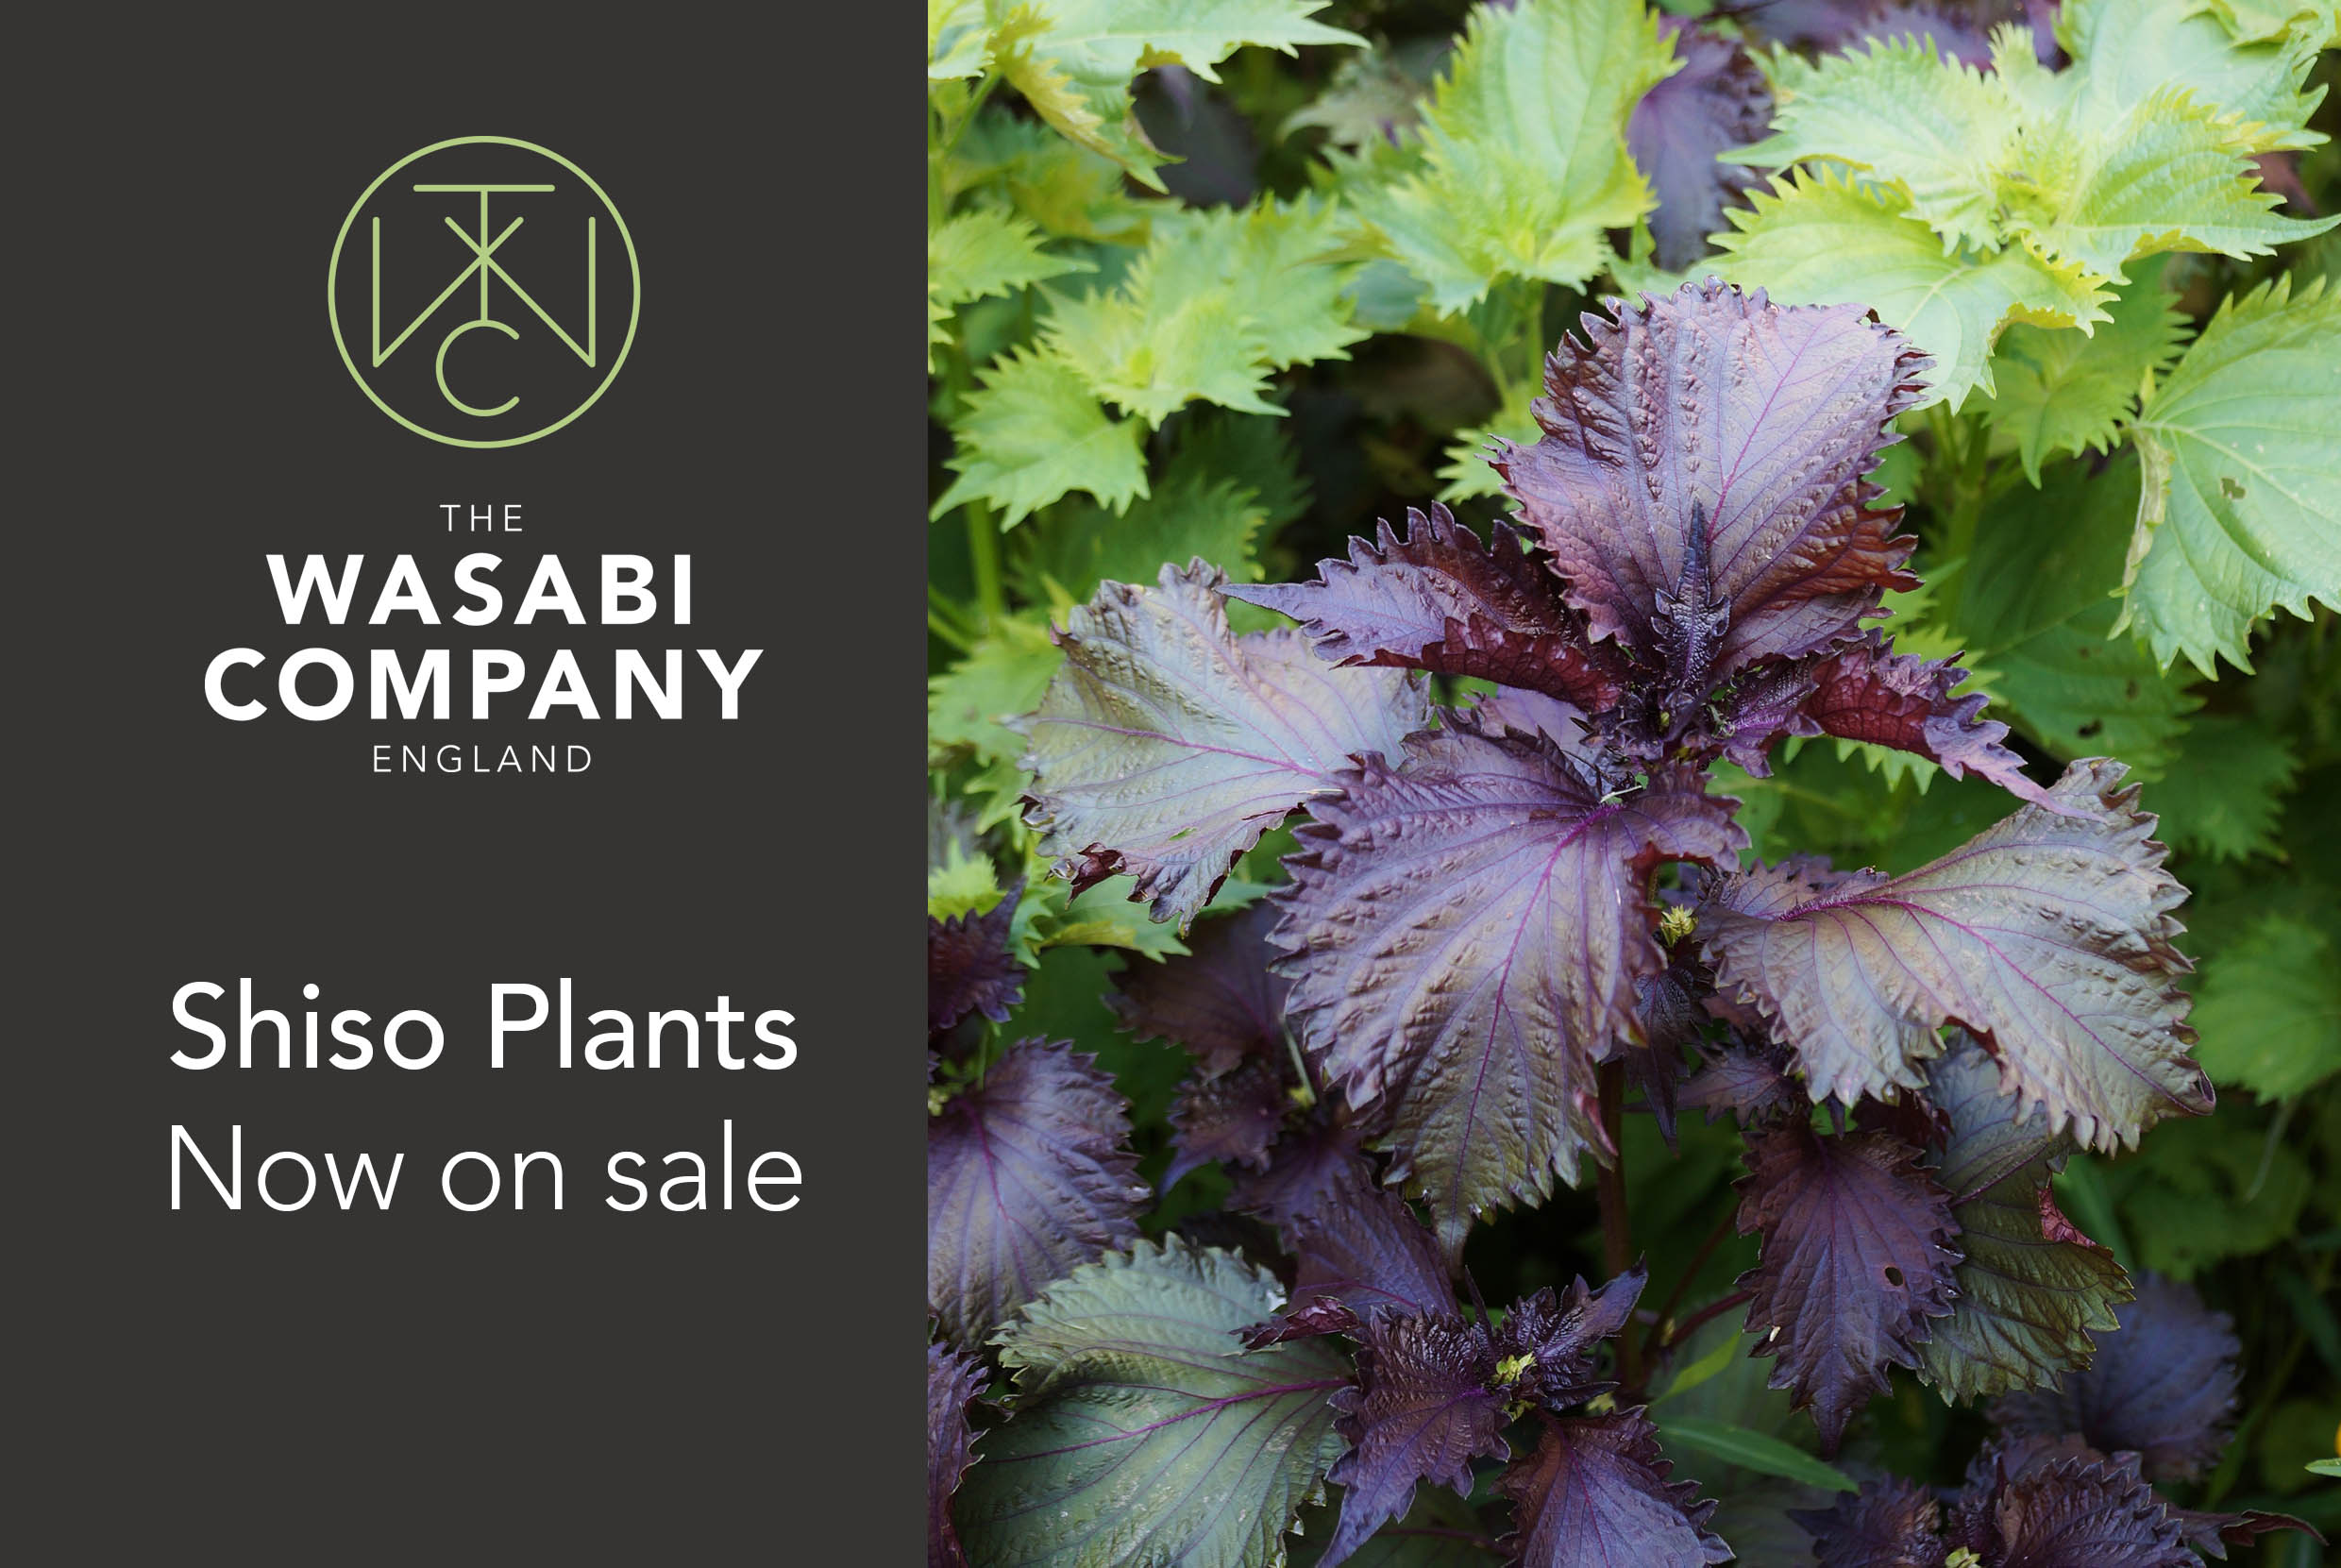 NEW! Shiso Plants - now on sale